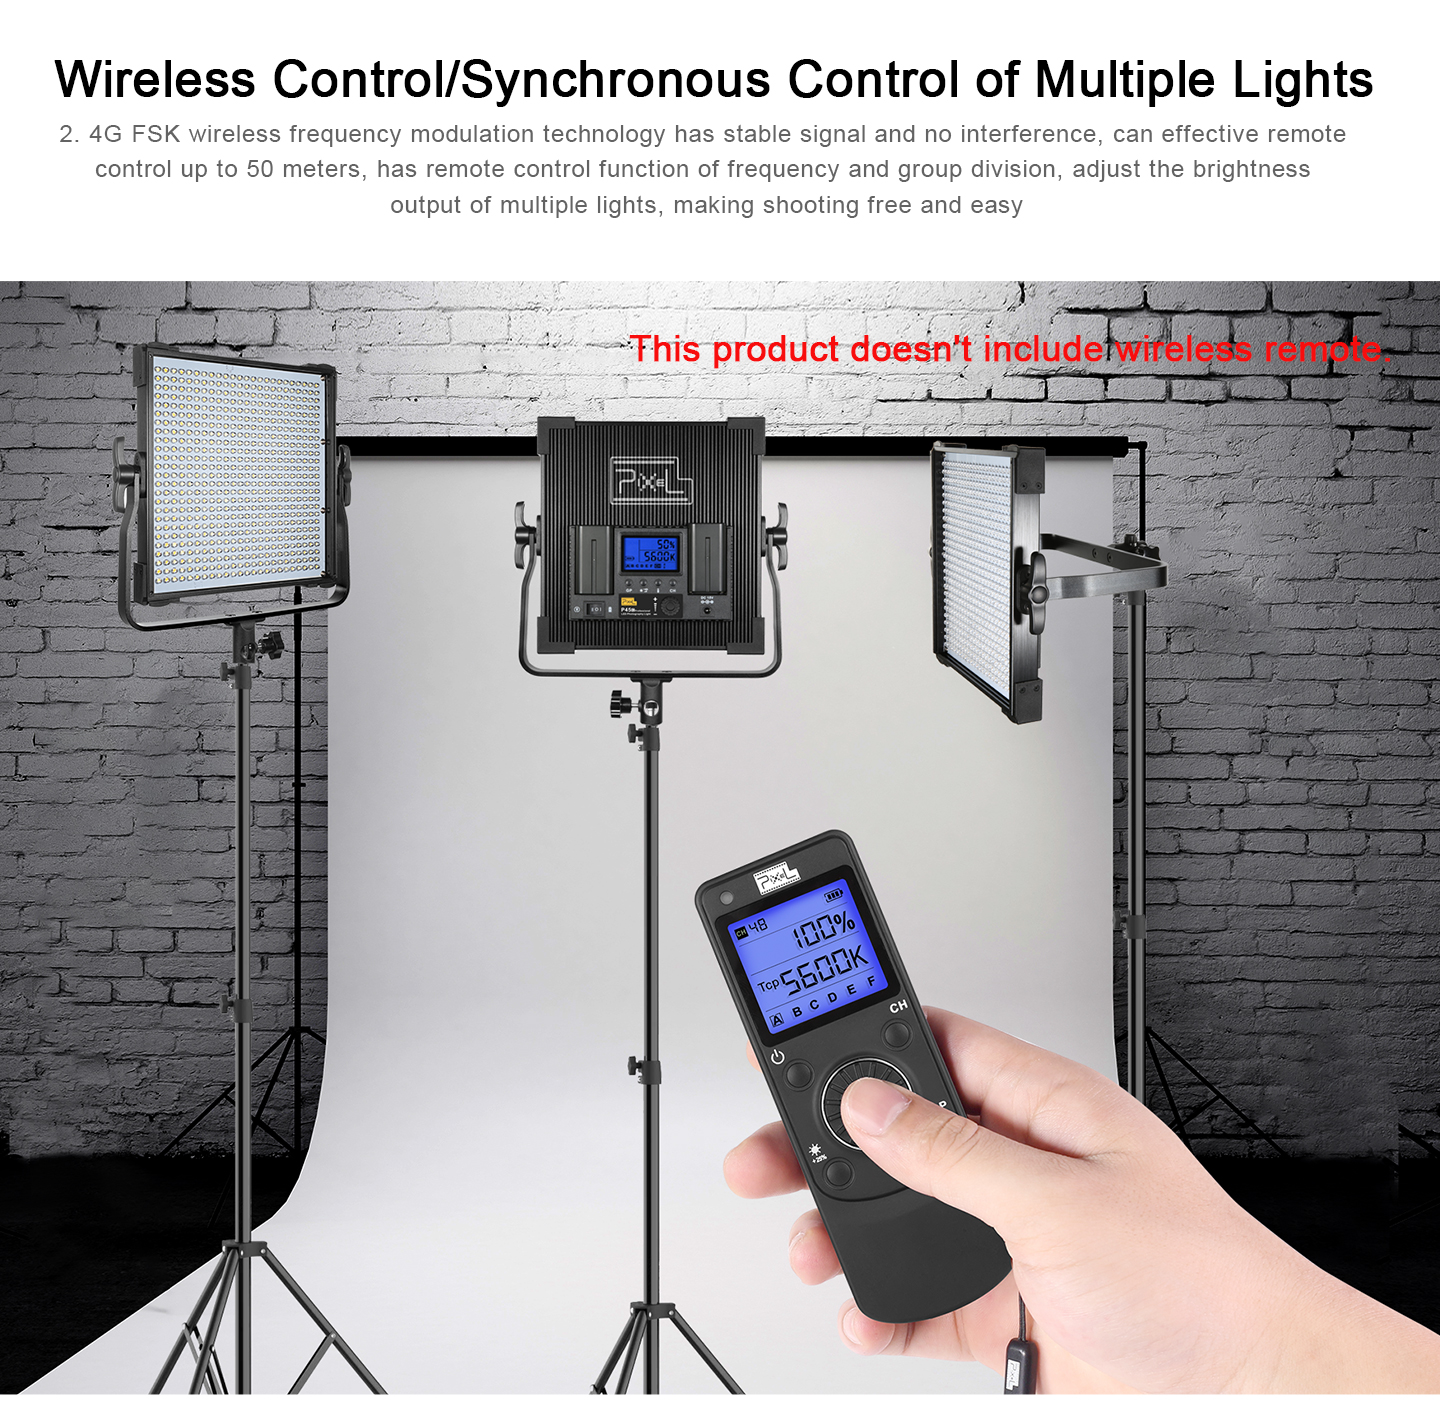 Wireless Control/Syncchronous Control of Multiple Lights